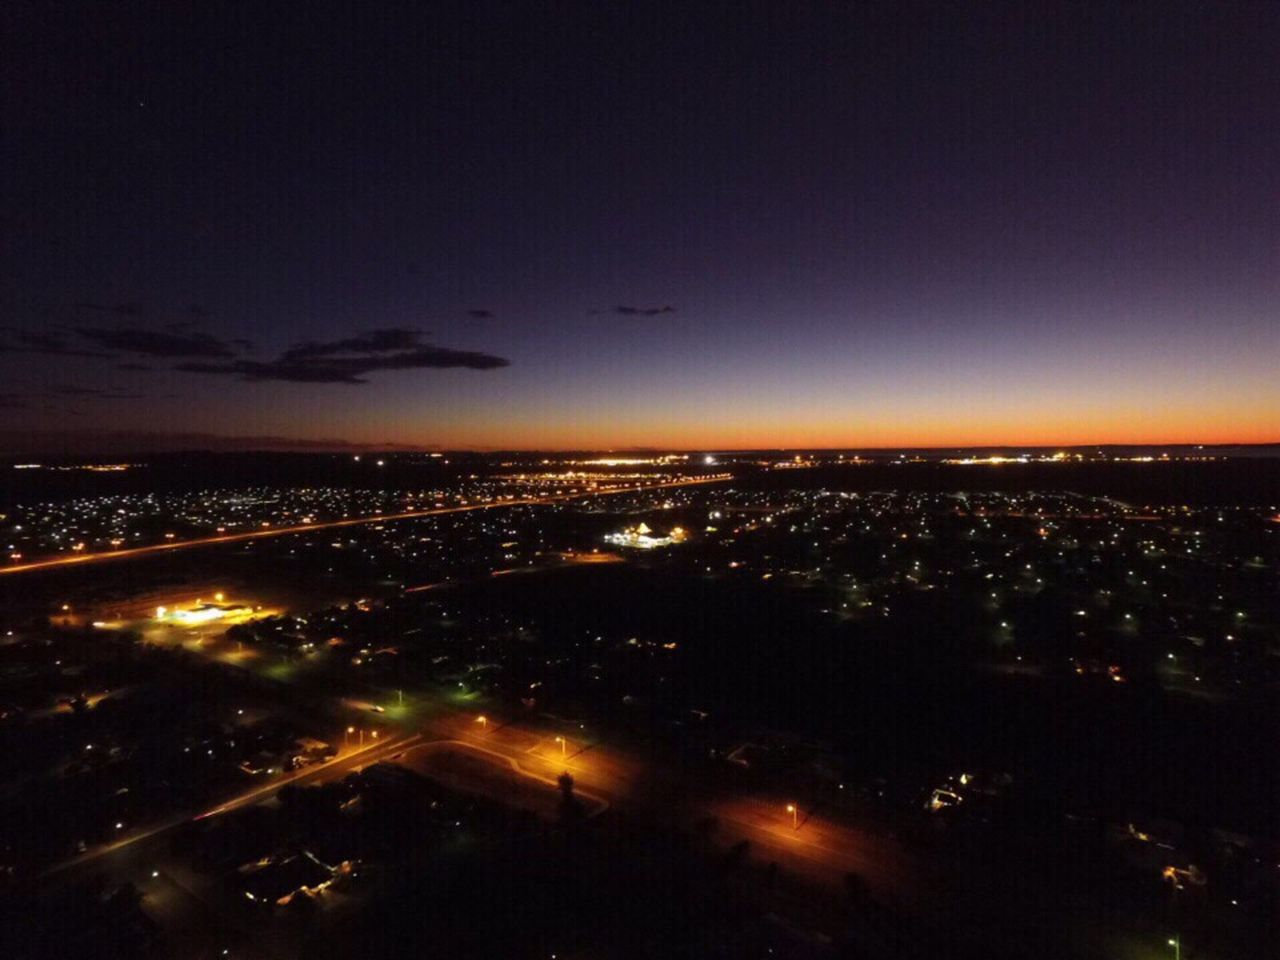 Here Belongs To Me Karratha Western Australia WesternAustralia Night Nightphotography Night Lights Night Photography Night View Lights Outback Australia Outbackaustralia Outback Landscape Landscape_Collection Landscapes With WhiteWall Landscapes Landscape_photography Flying High